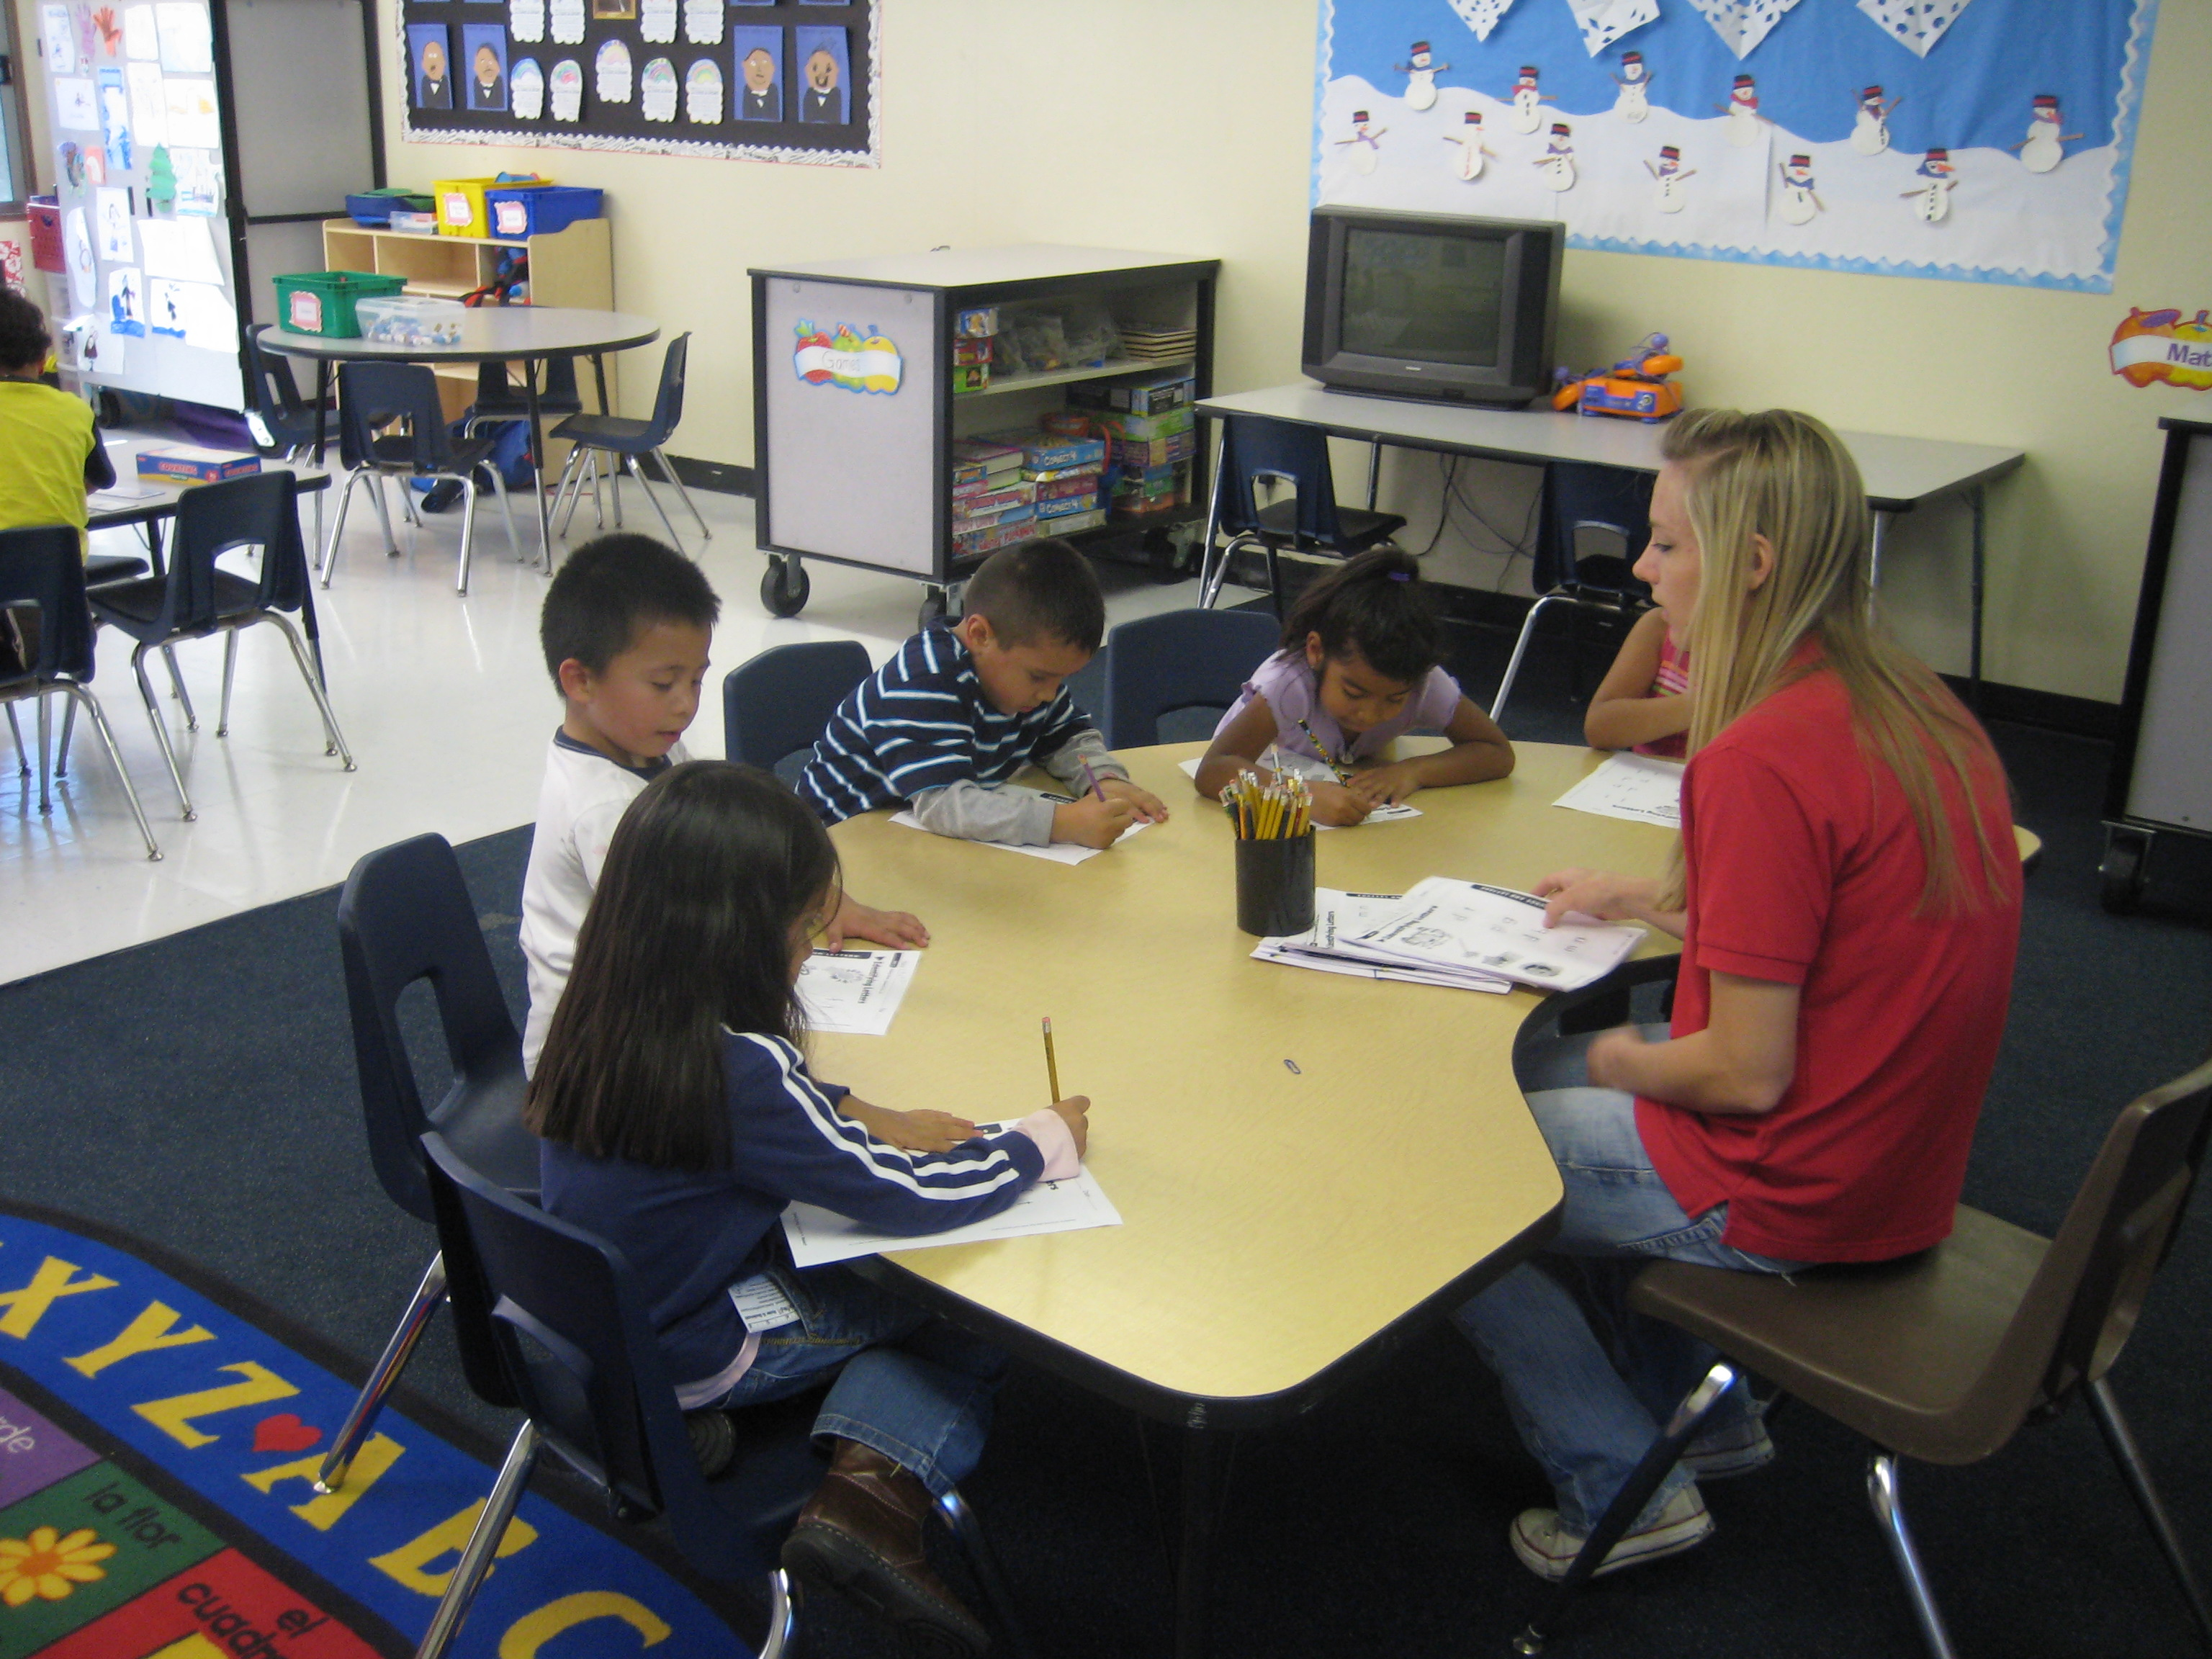 students working at a table with teacher